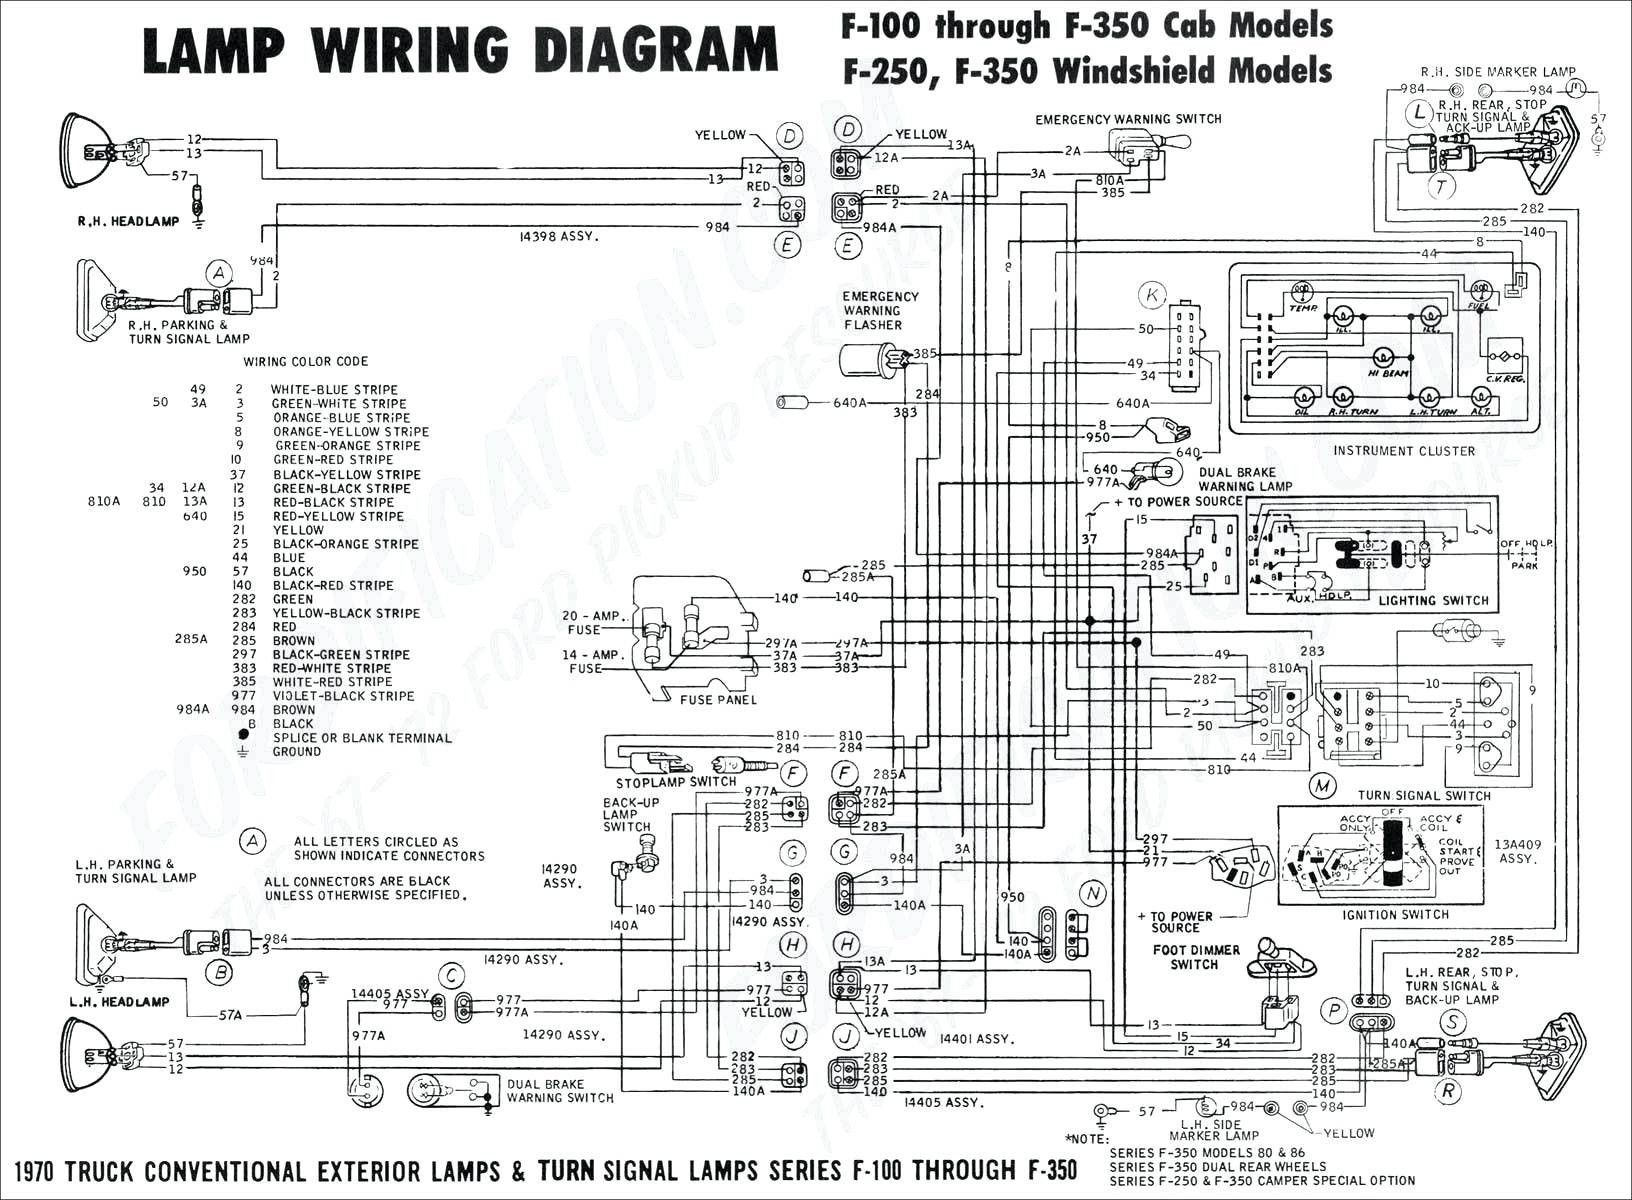 Ford F250 Tail Light Wiring In 2020 Trailer Wiring Diagram Electrical Wiring Diagram Circuit Diagram